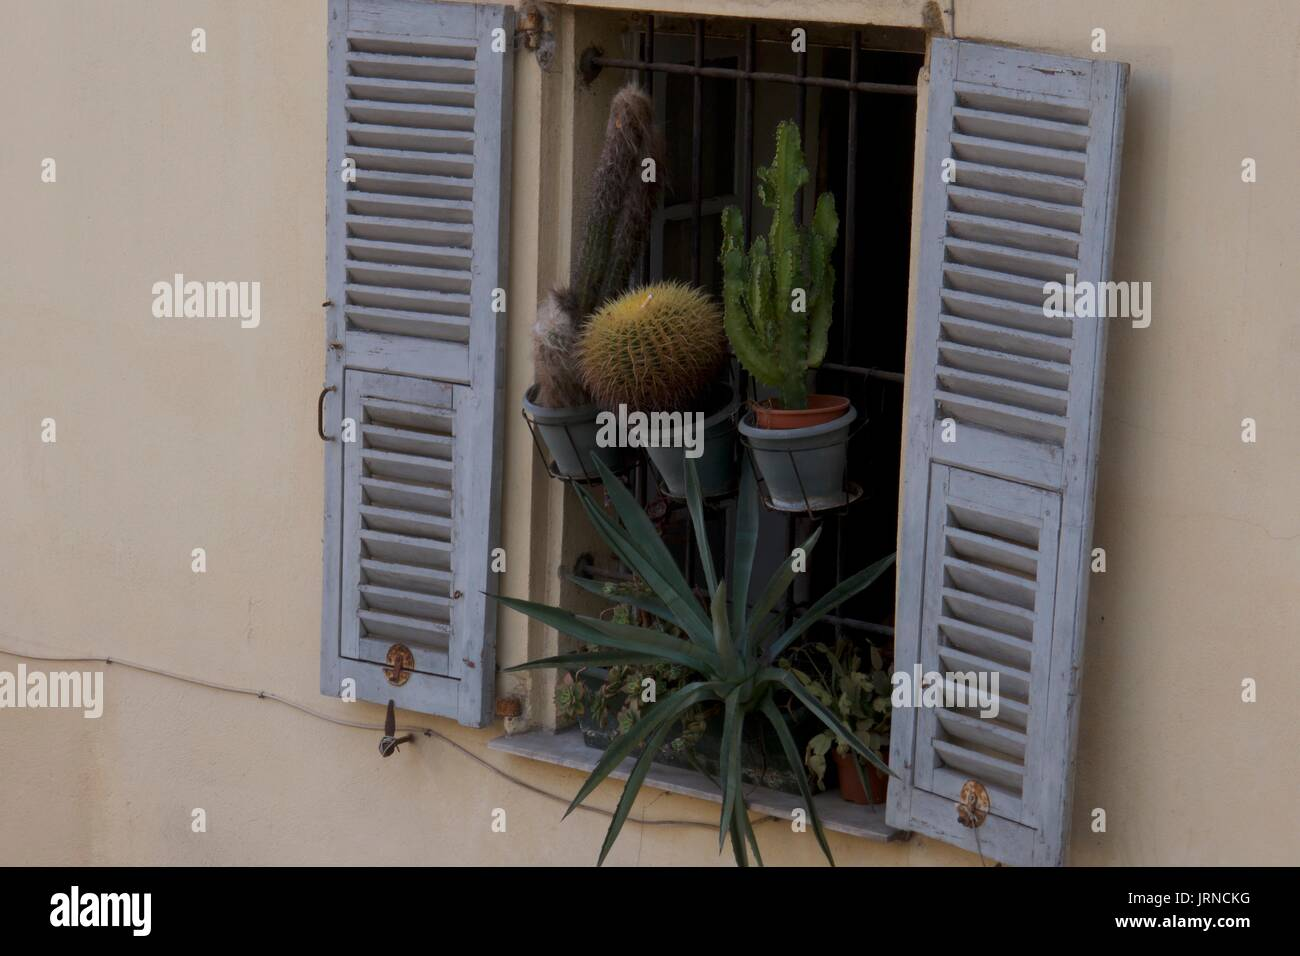 Display of cacti pot plants at traditional apartment window, Nice, France - Stock Image